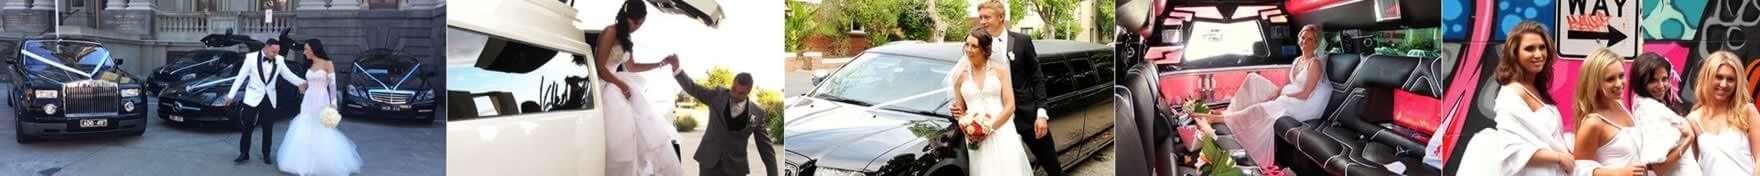 Wide Range of Wedding Cars for Hire